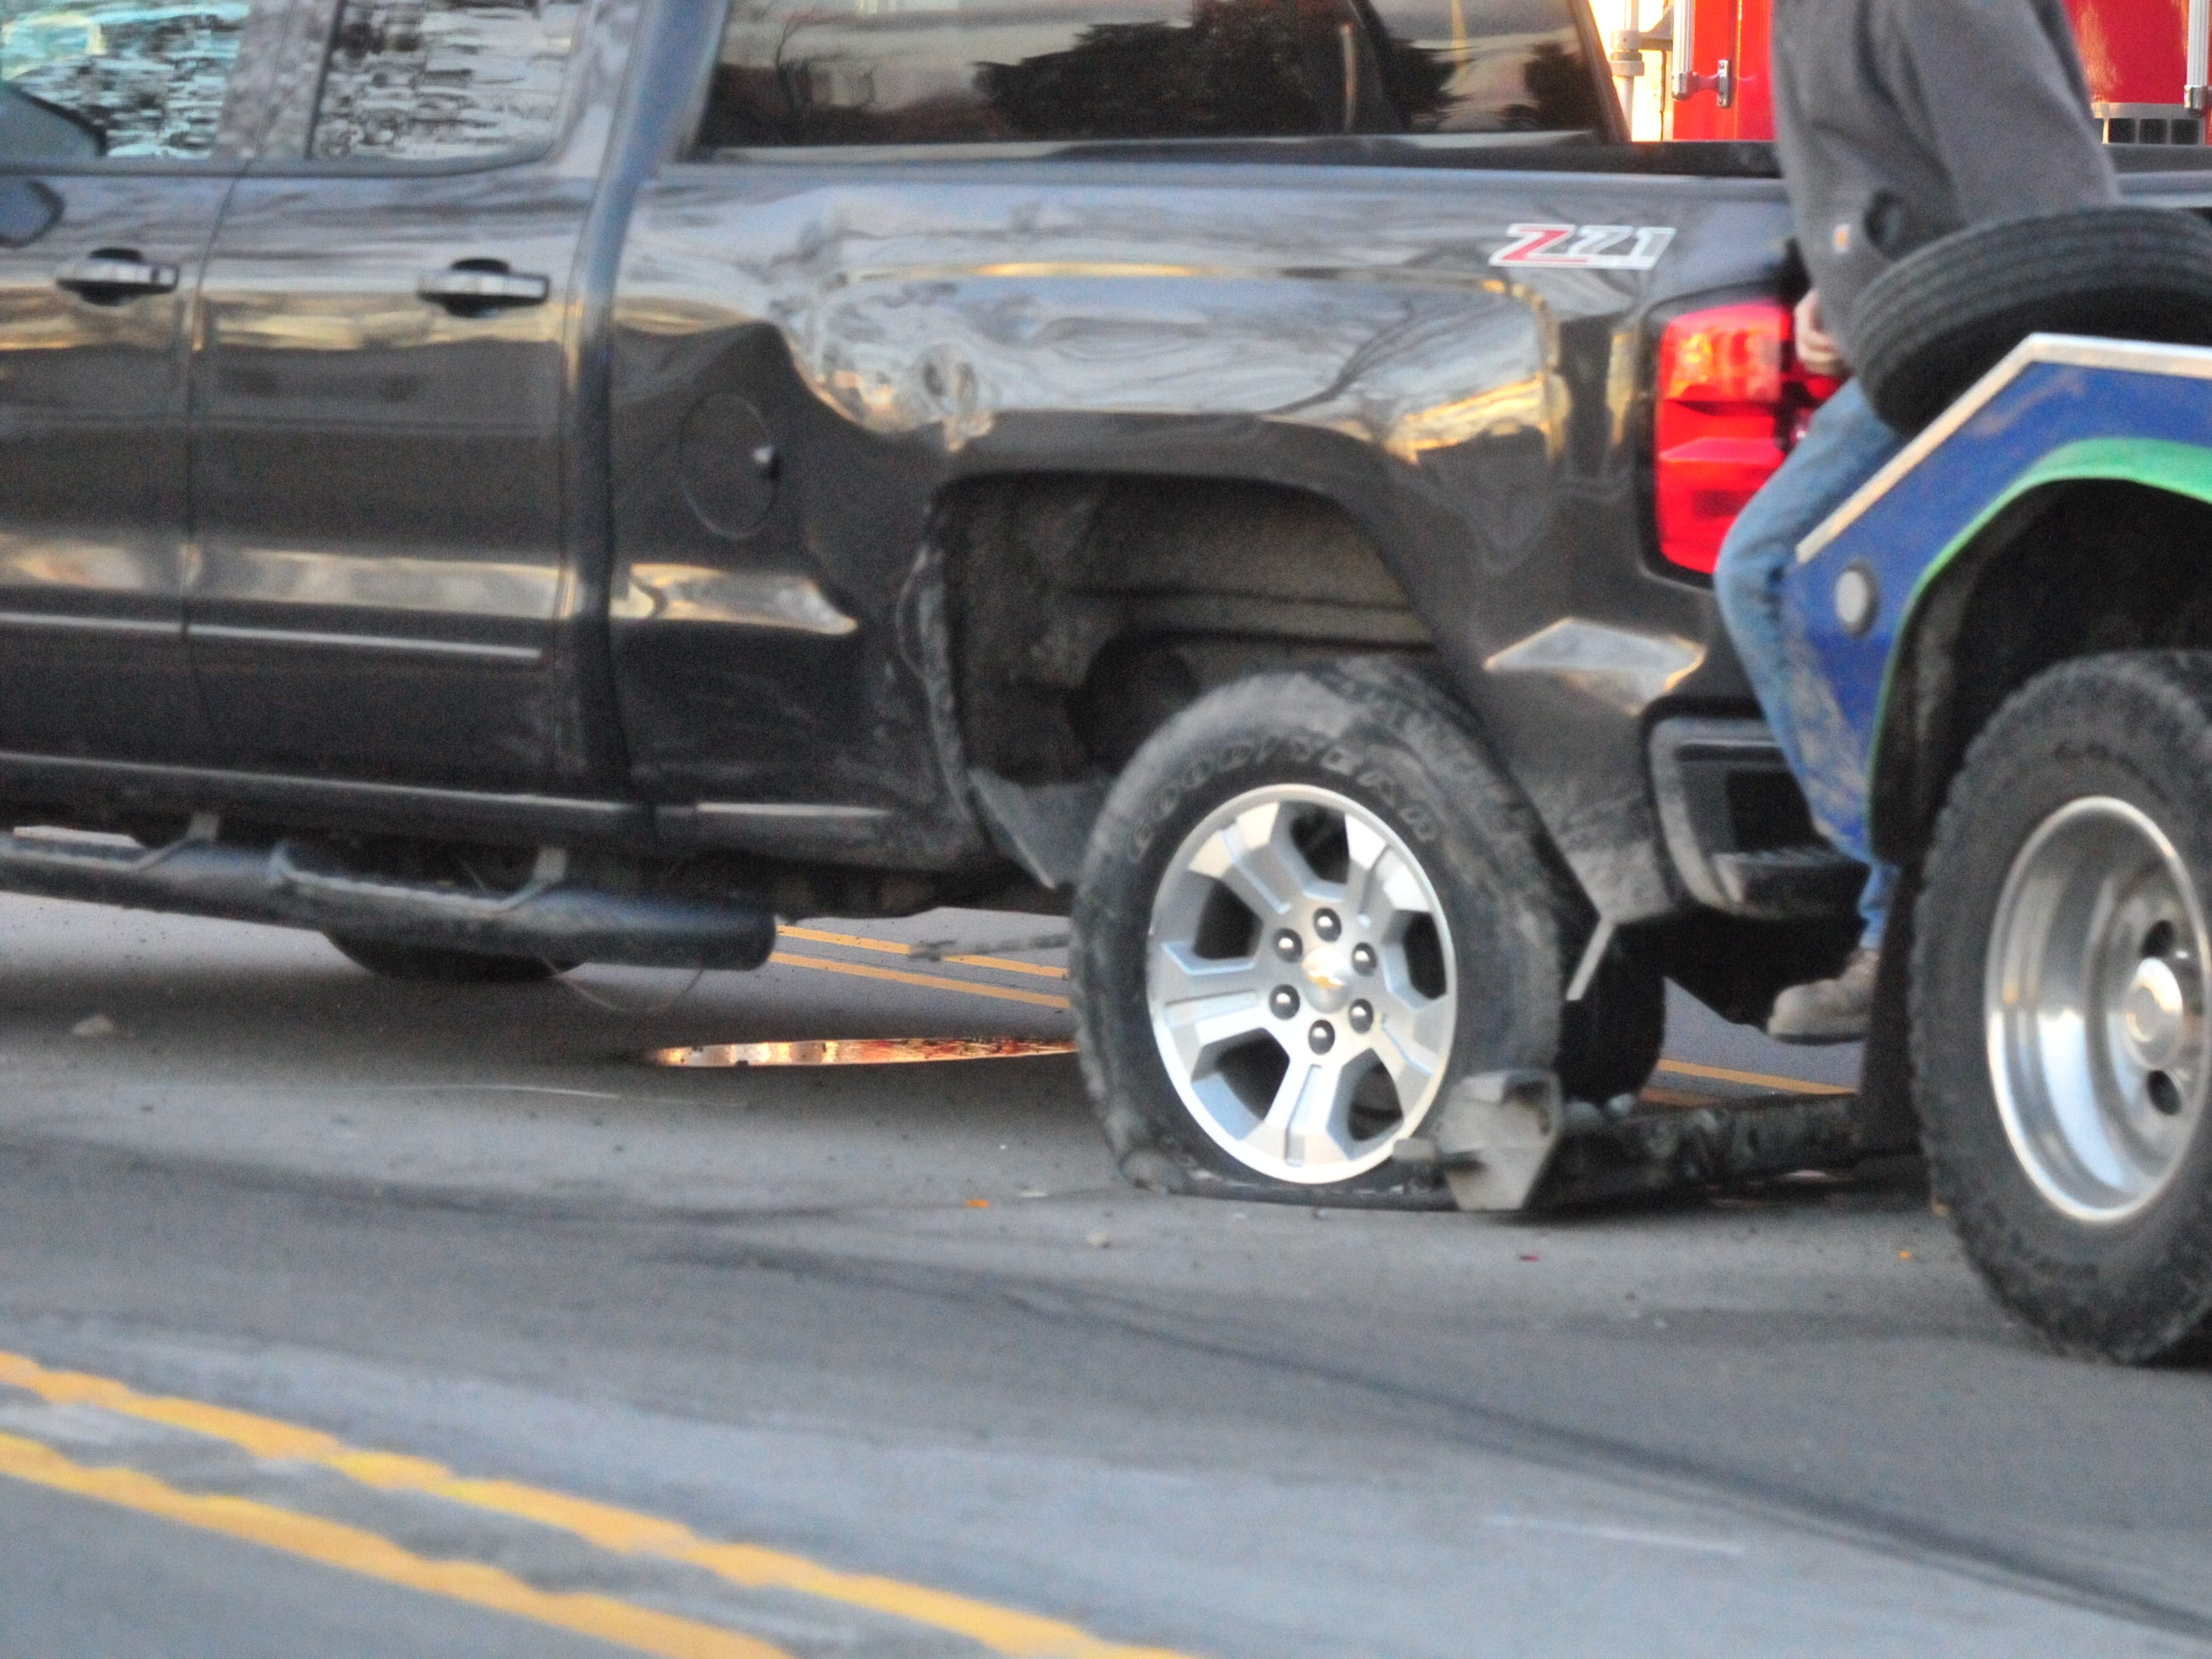 A Chevrolet Silverado was involved in a three-vehicle accident Monday afternoon on U.S. 35.